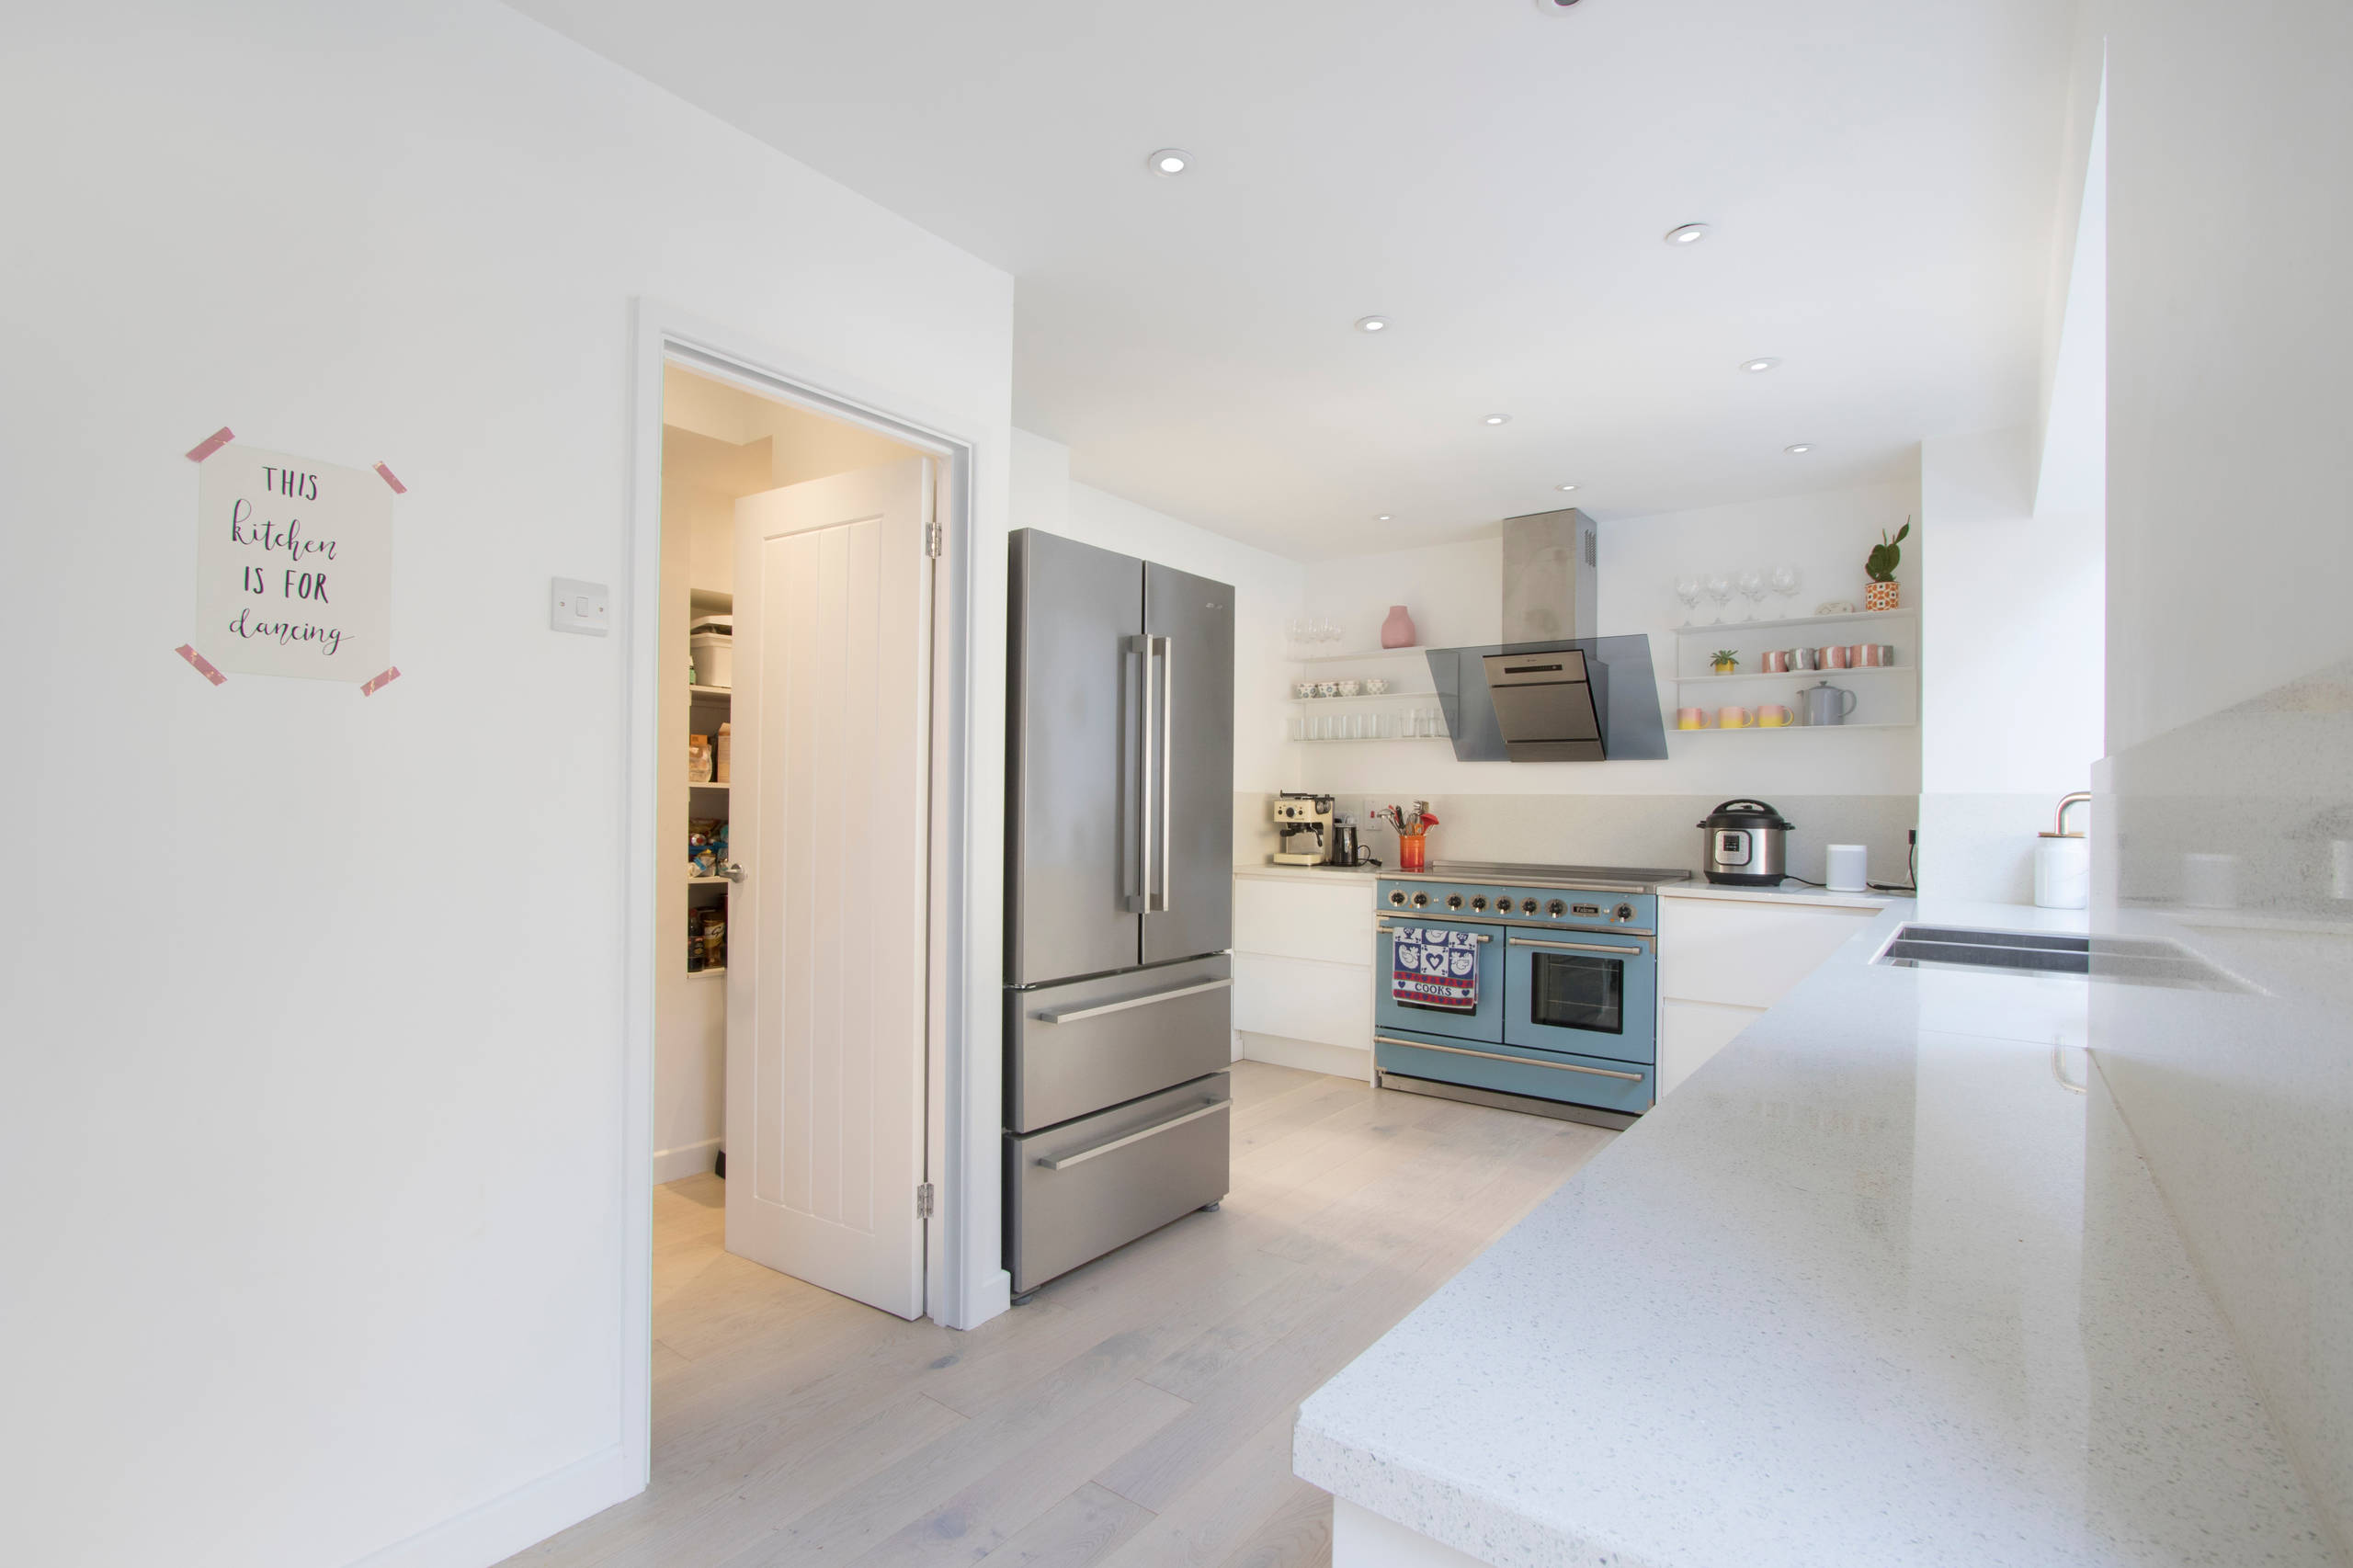 75 Beautiful Open Concept Kitchen With No Island Pictures Ideas April 2021 Houzz